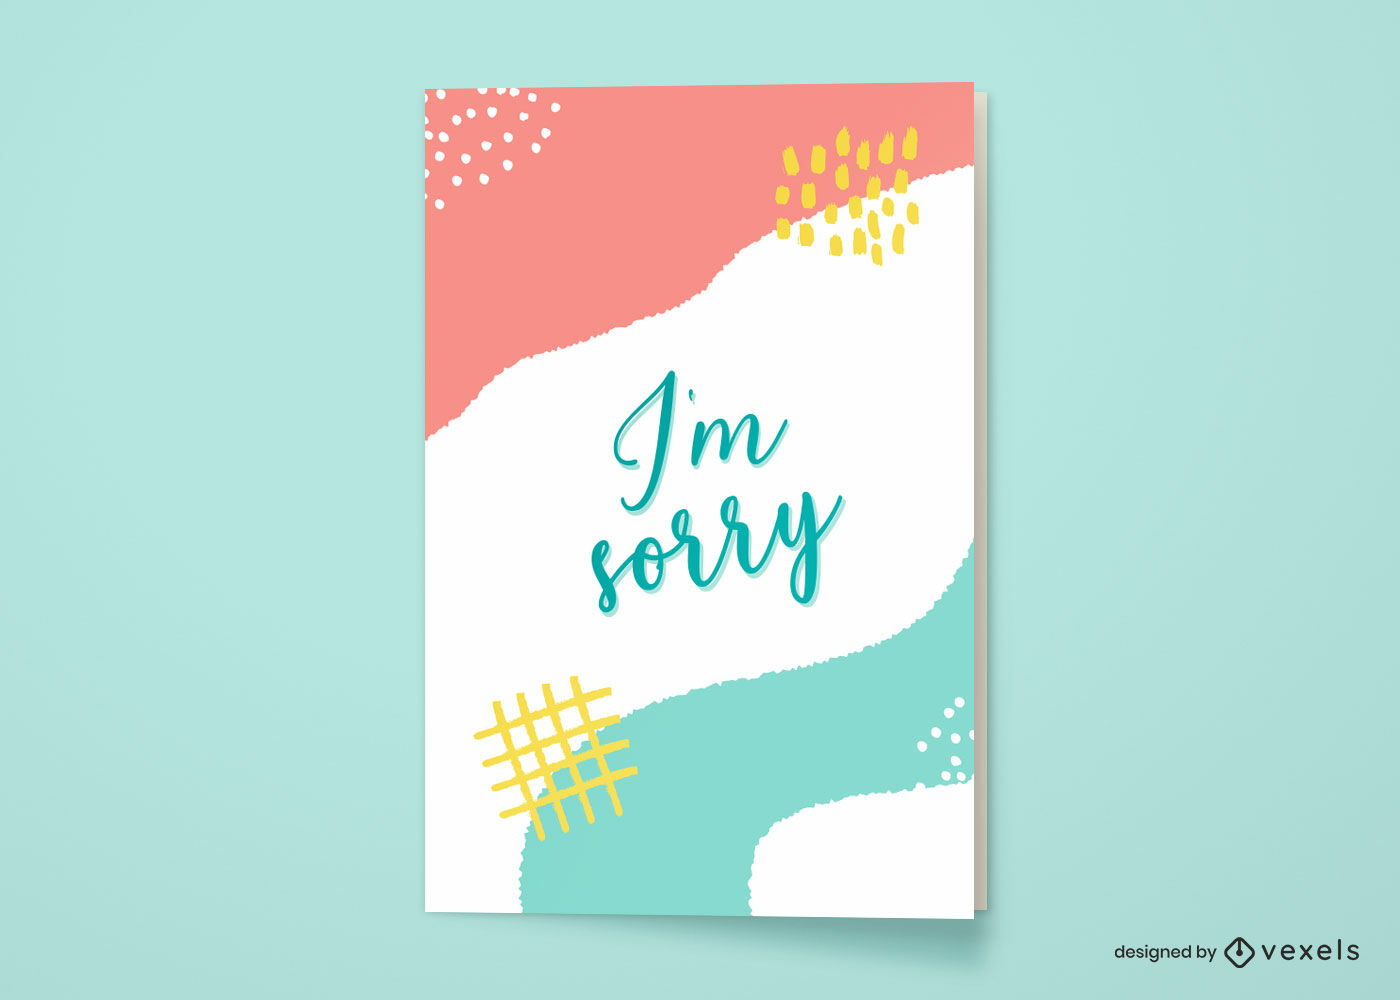 I'm sorry greeting card abstract design